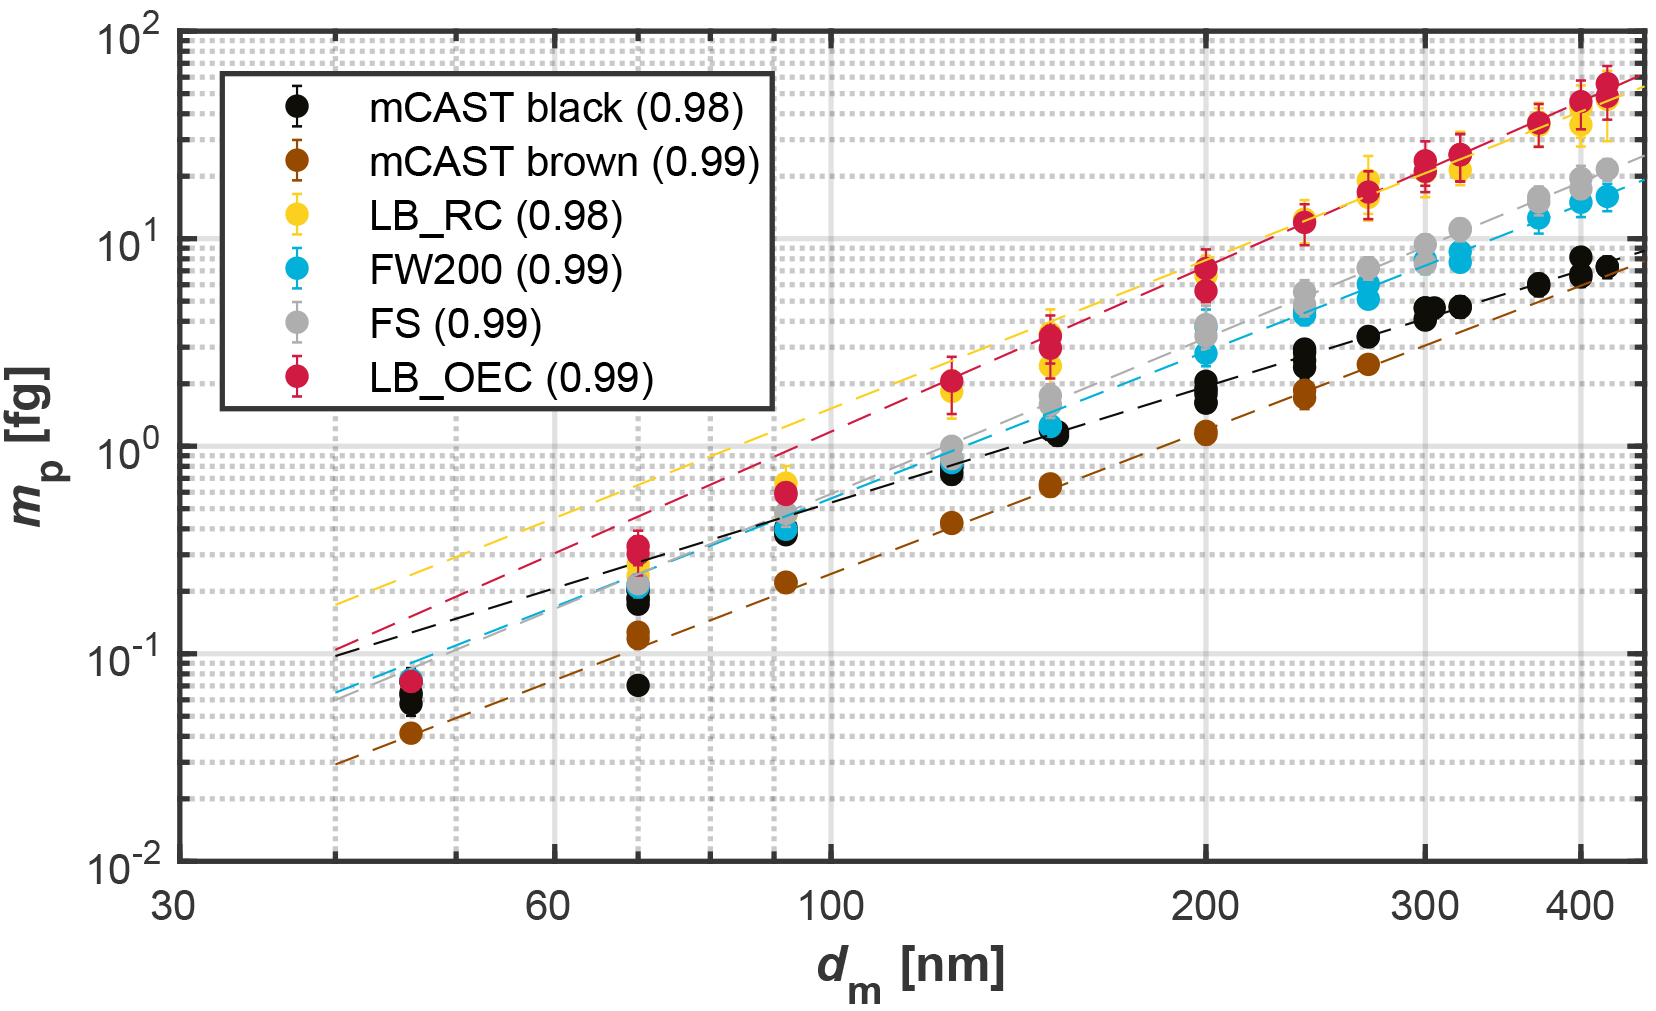 ACP - Ice nucleation abilities of soot particles determined